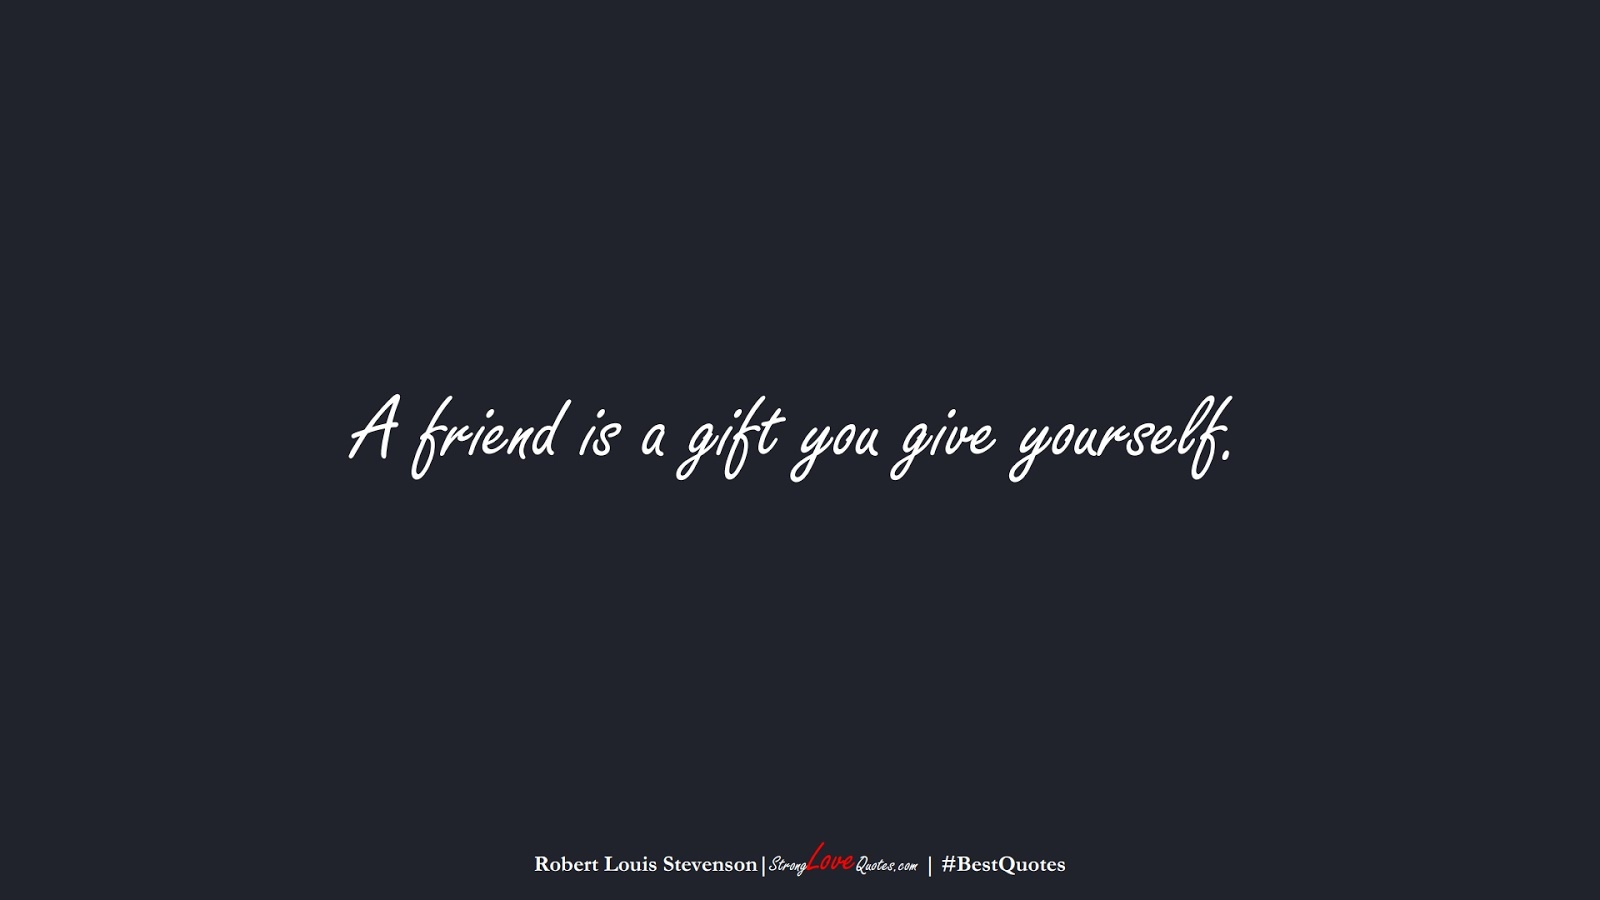 A friend is a gift you give yourself. (Robert Louis Stevenson);  #BestQuotes